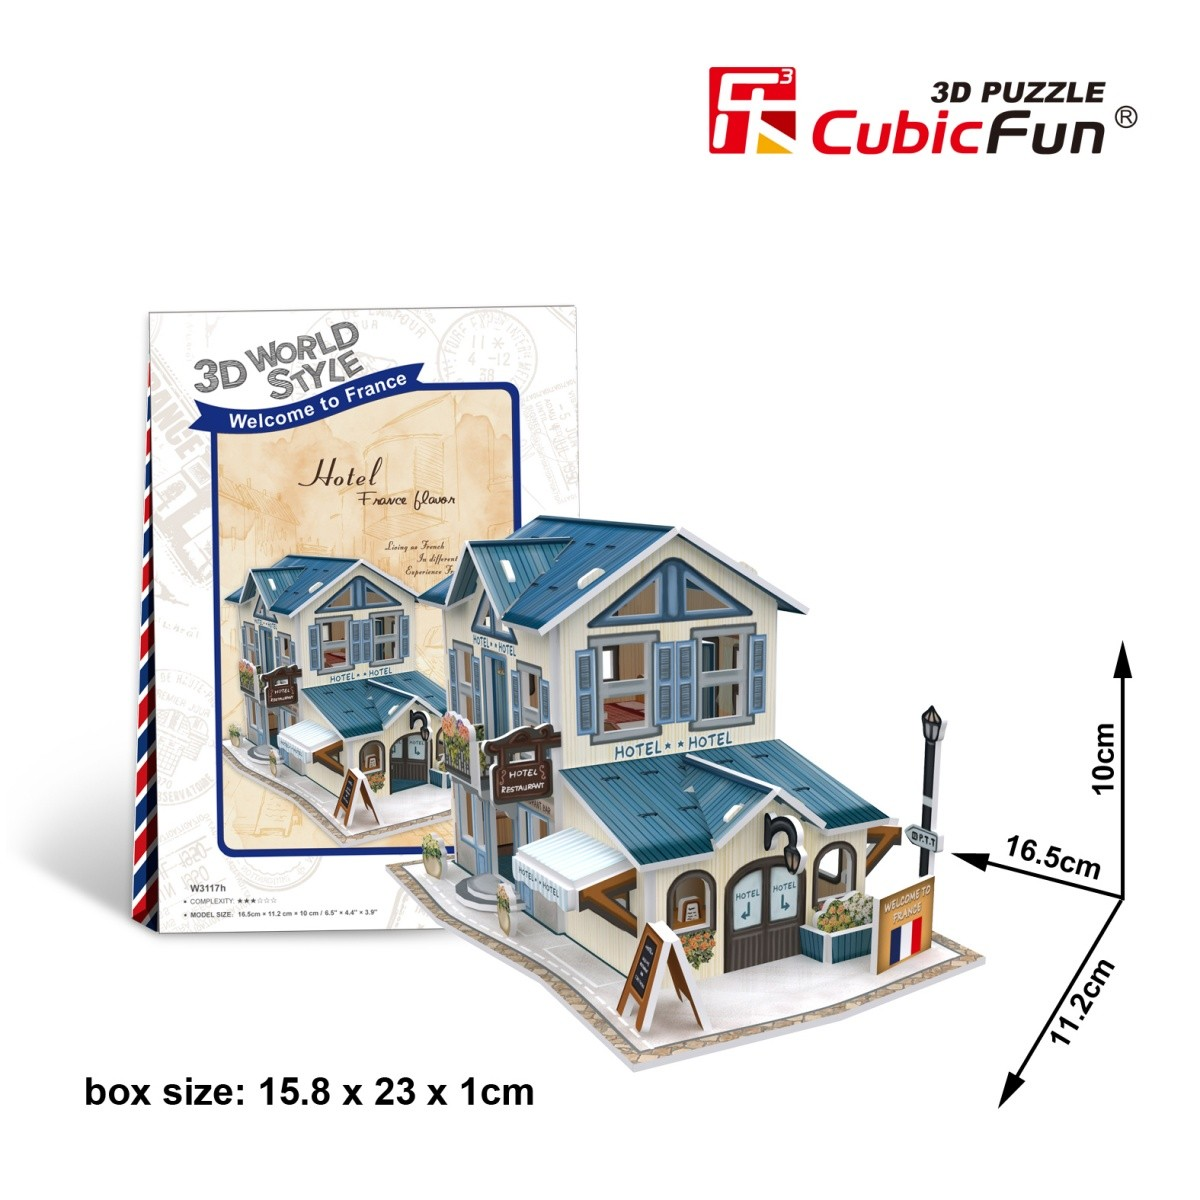 cubic-fun-3d-puzzle-world-style-welcome-to-france-32-teile-puzzle-cubic-fun-w3117h